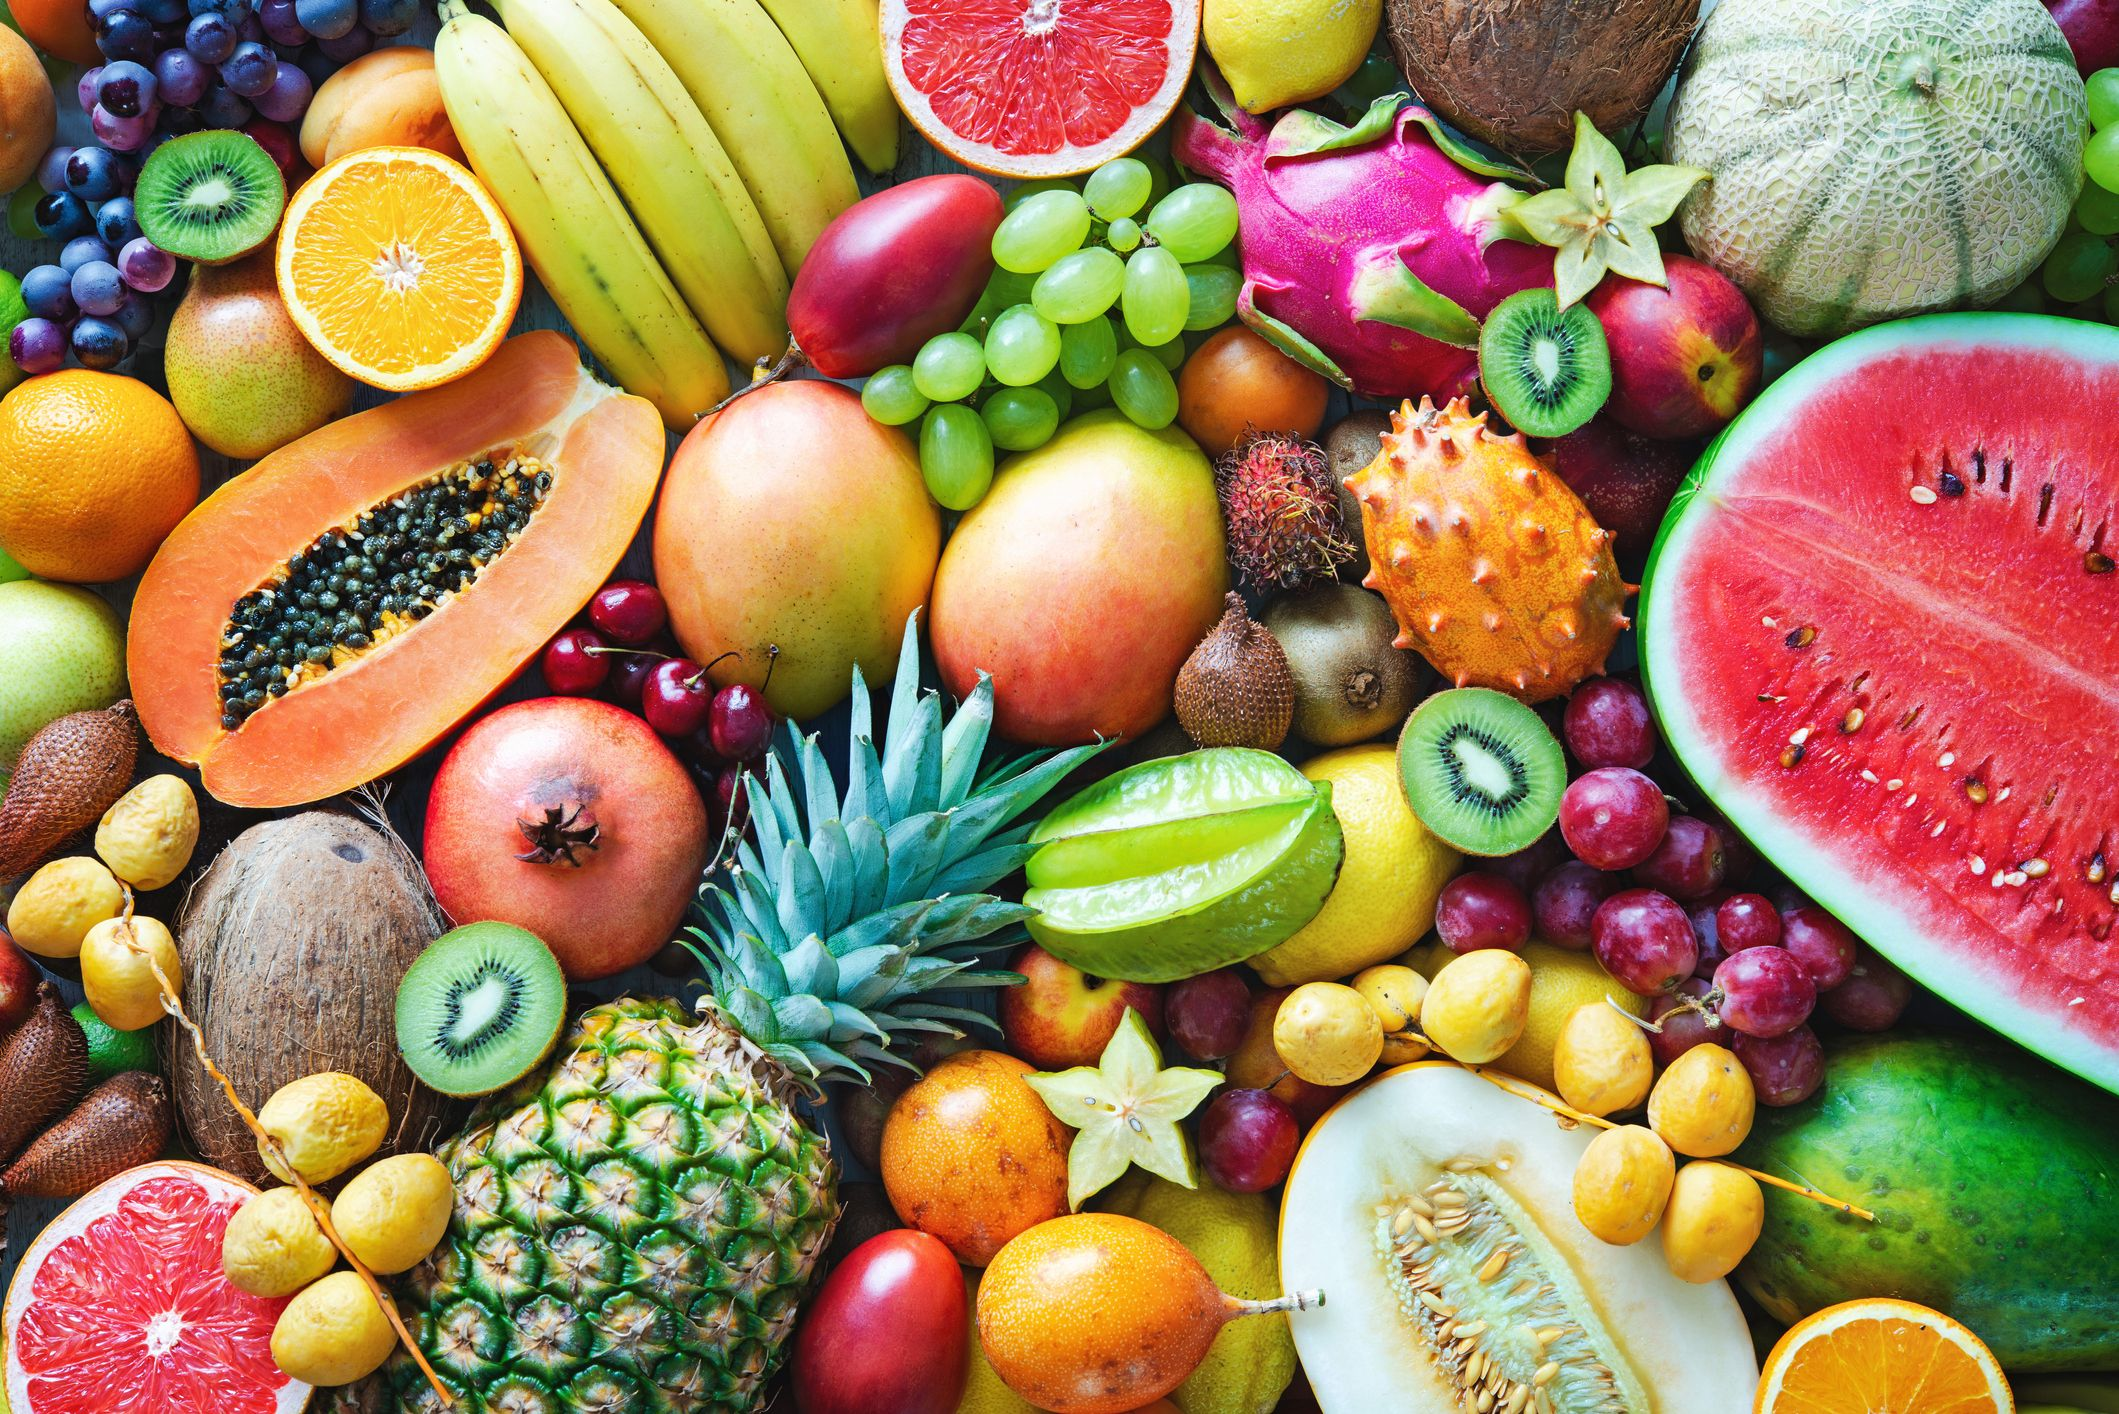 The fruits with the most and least sugar